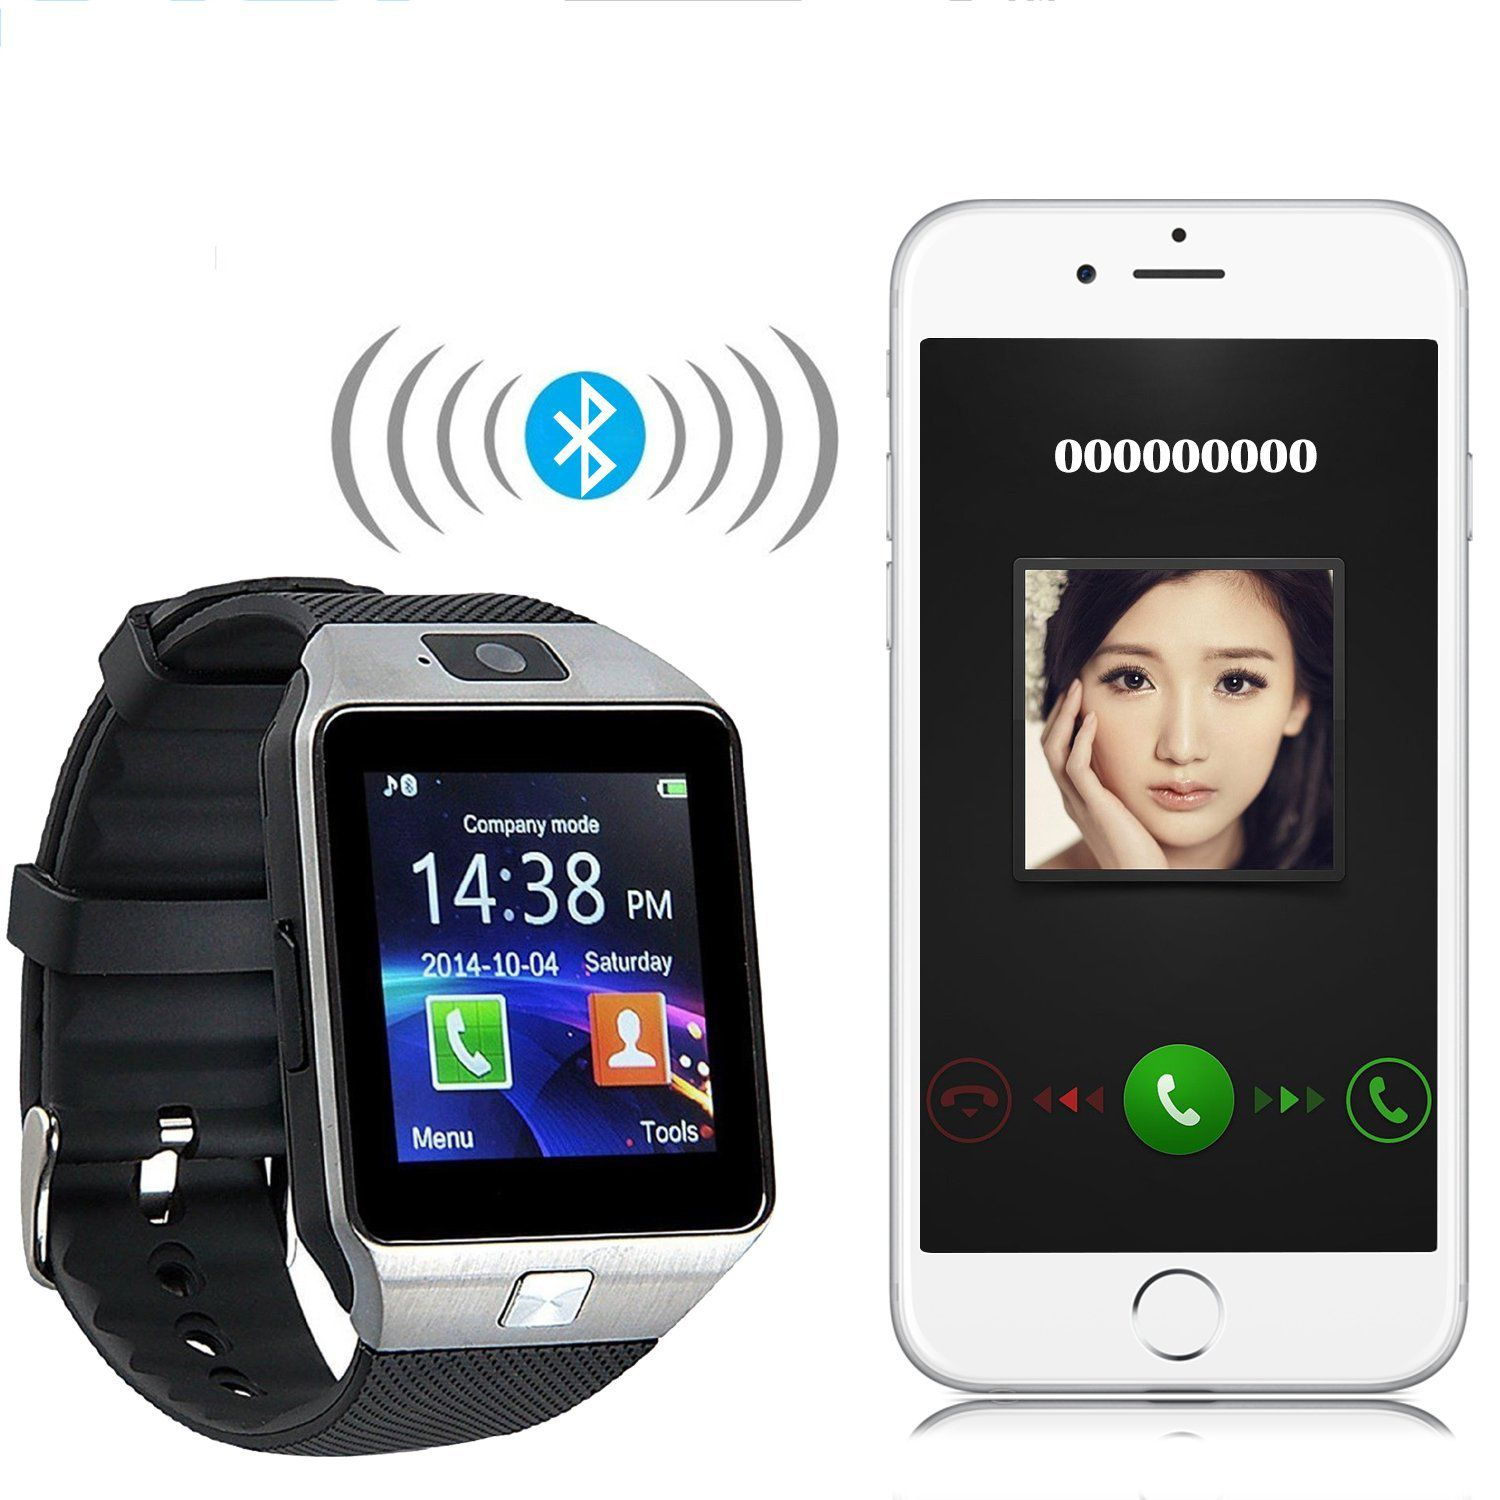 pp texting brings smartwatch facebook to black twitter wired sony watches colorwristband your solo phone mobile wrist